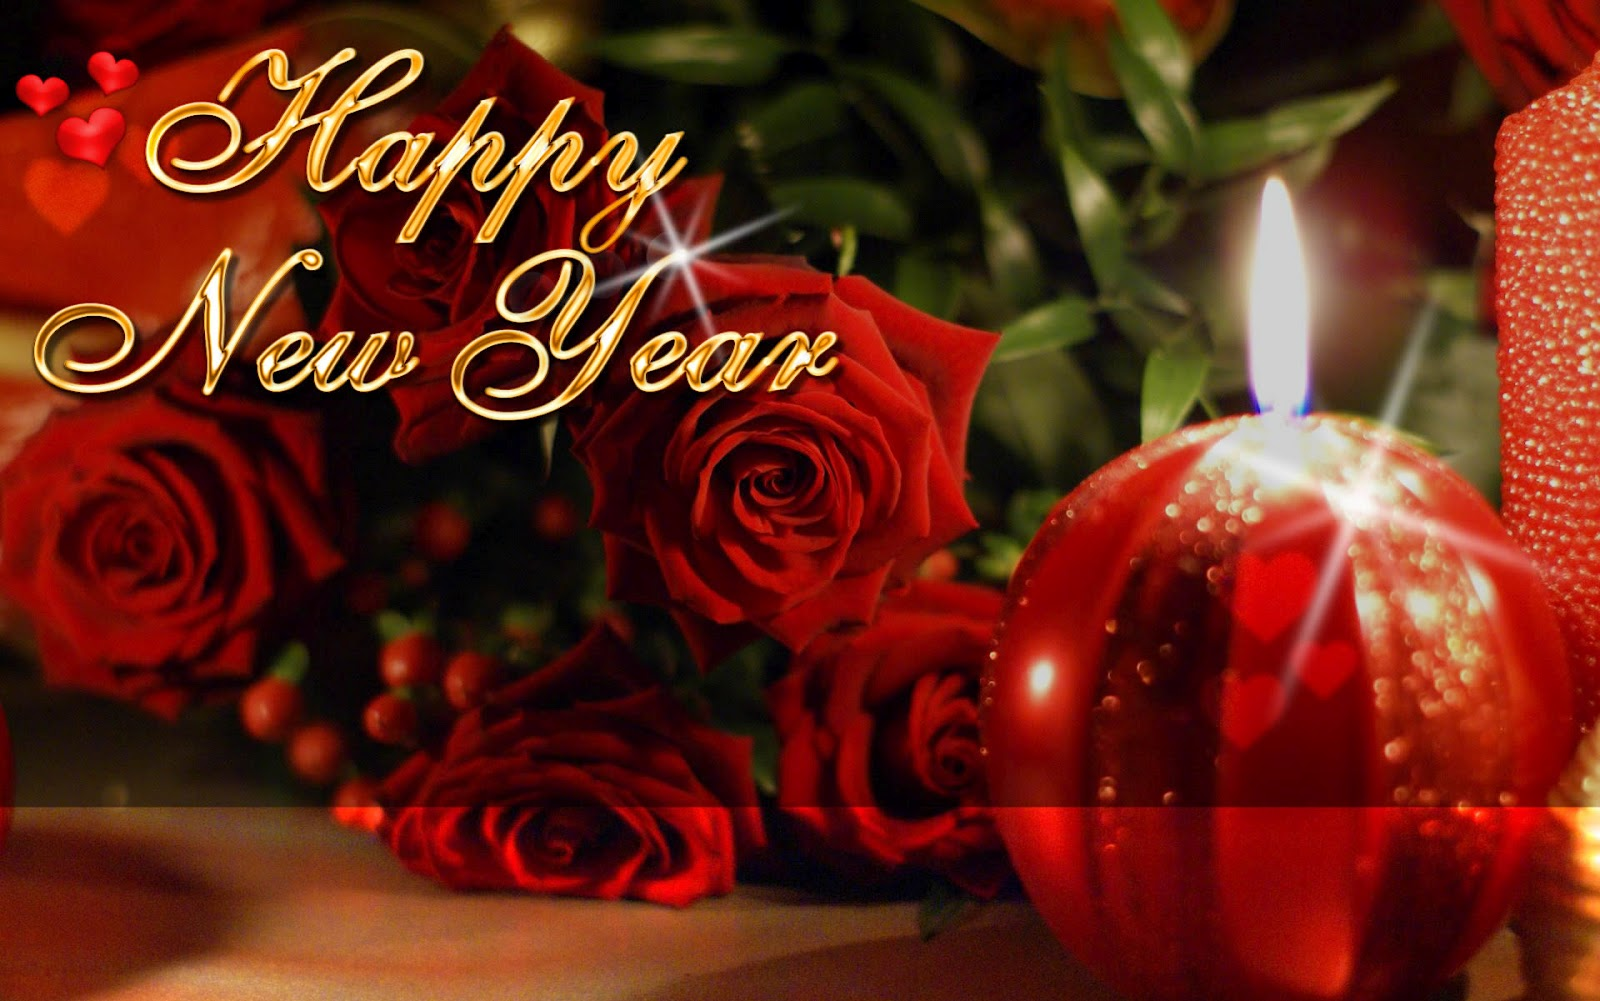 http://3.bp.blogspot.com/-xBZThduXjLc/UM1MEUzM3fI/AAAAAAAAAss/zIoL6fF0vNM/s1600/happy-new-year-6-rose-candle-night.jpg